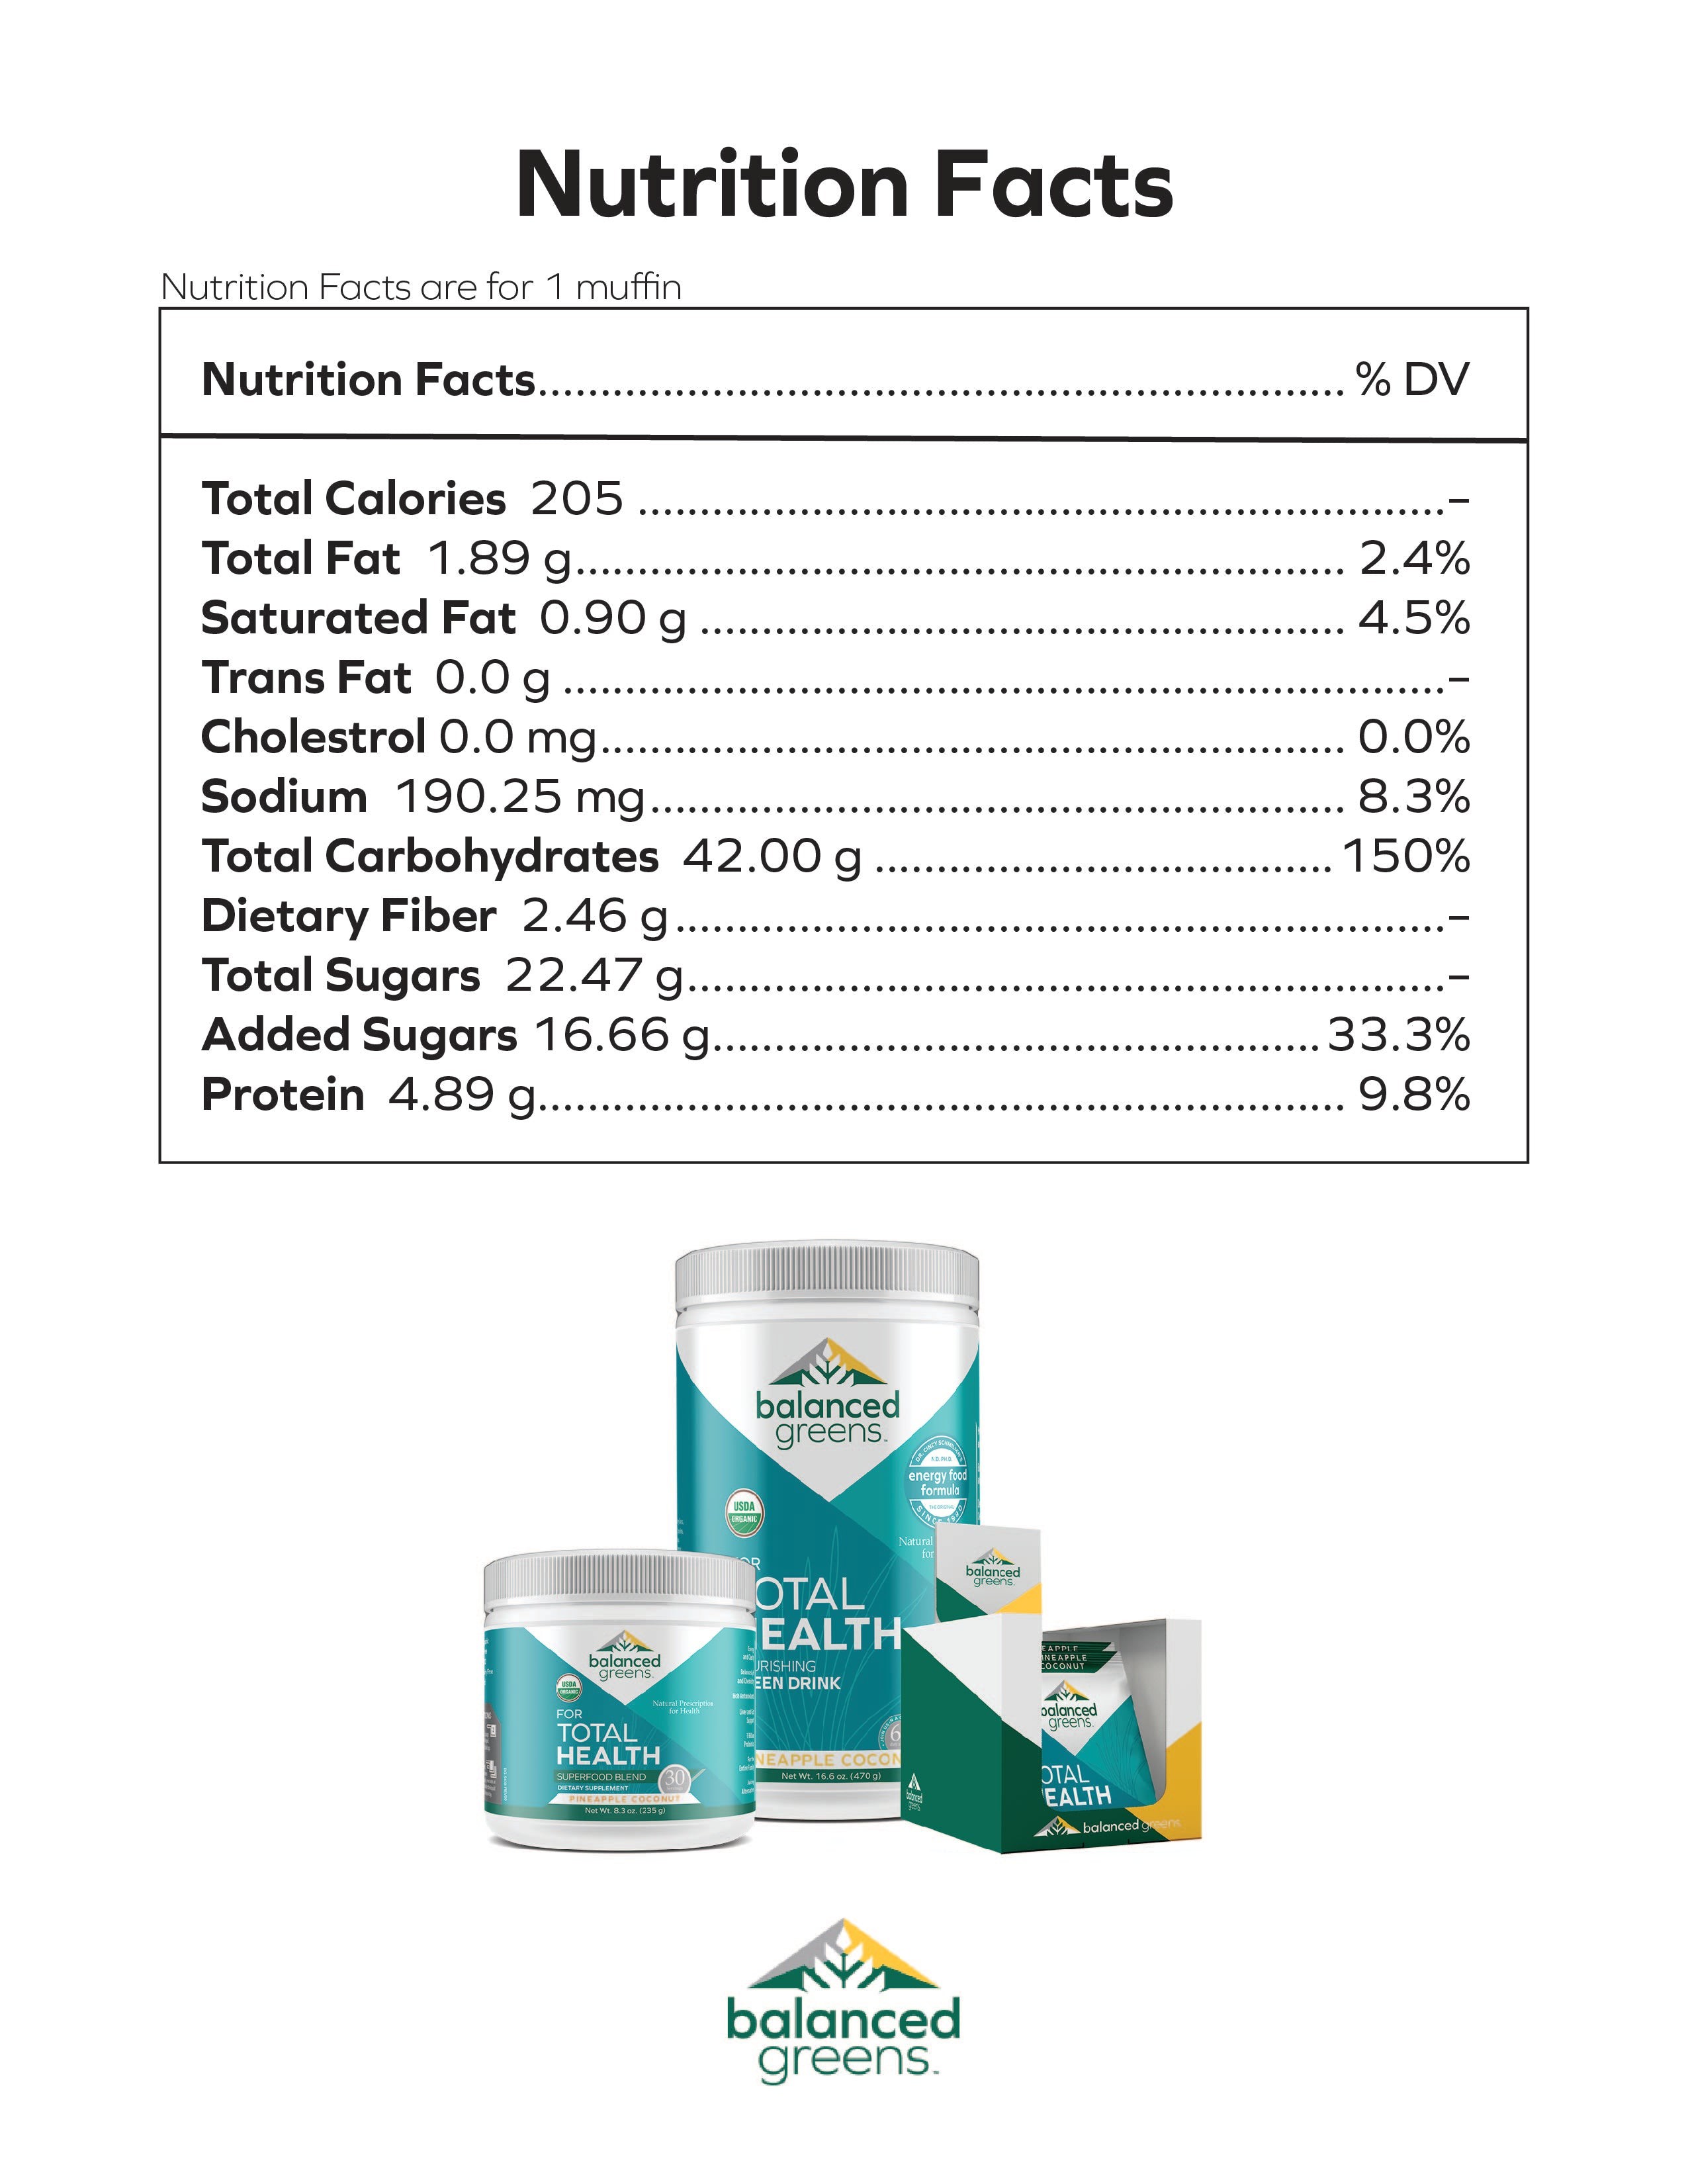 Tropical Sunrise Muffin Nutrition Facts